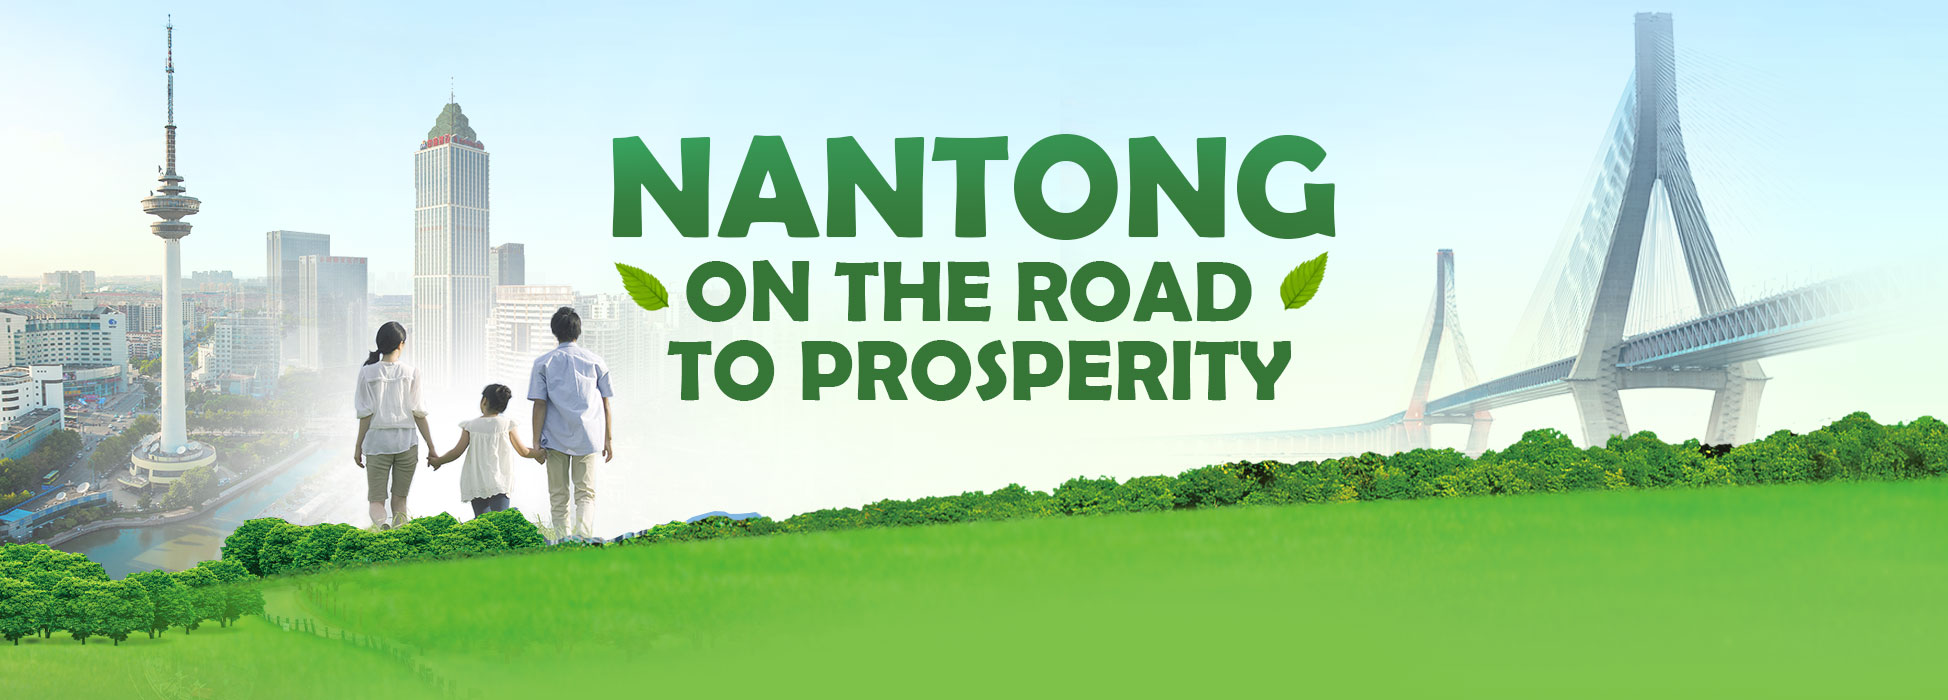 Nantong on the road to prosperity